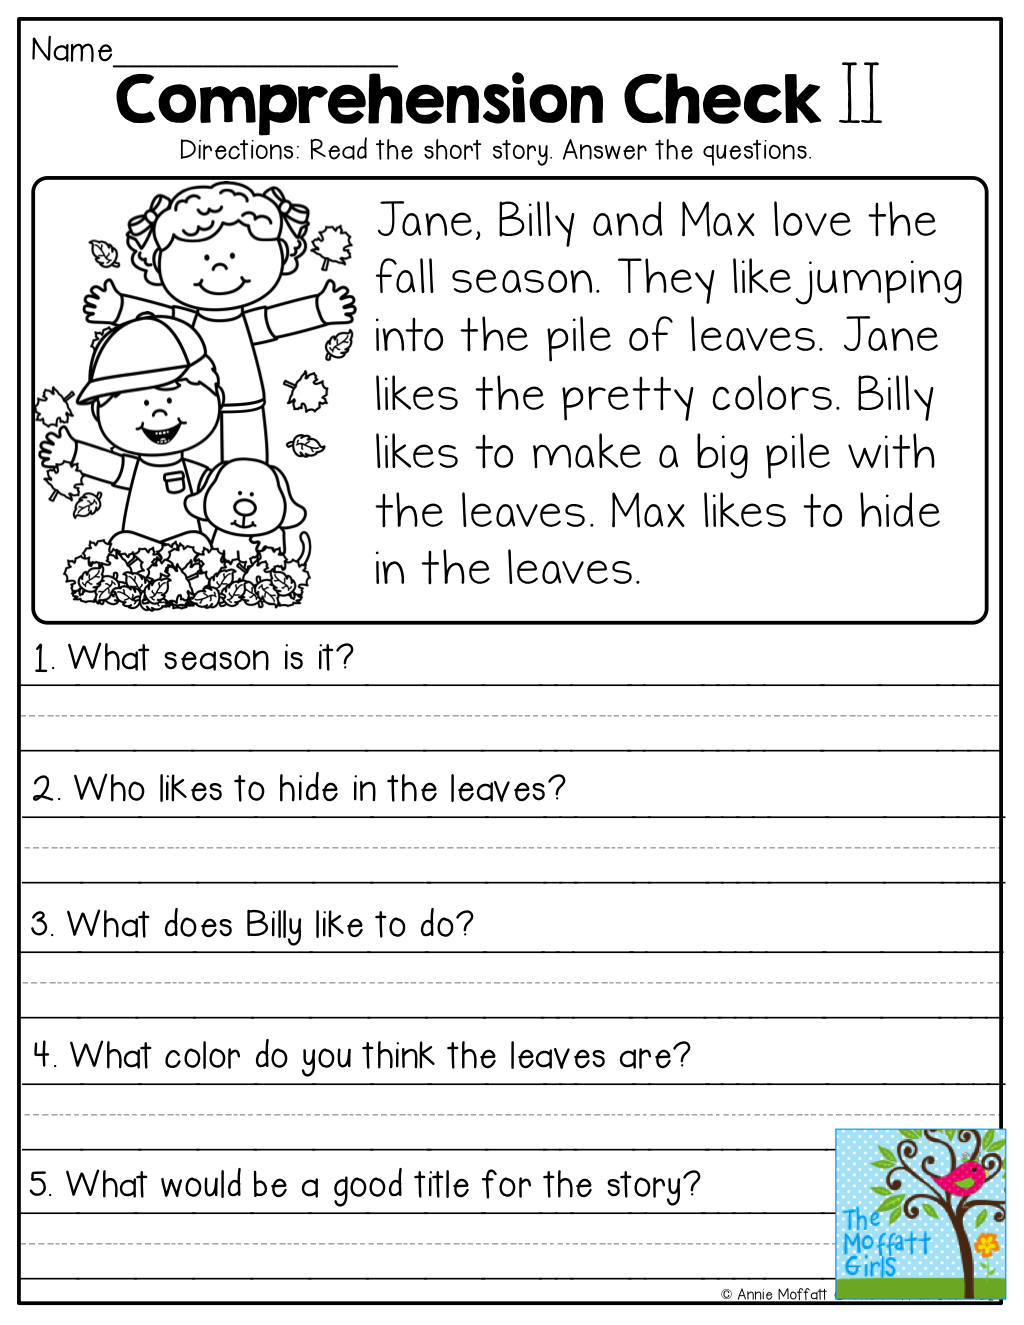 Comprehension Checks And So Many More Useful Printables! | Teaching - Free Printable Short Stories For Grade 3